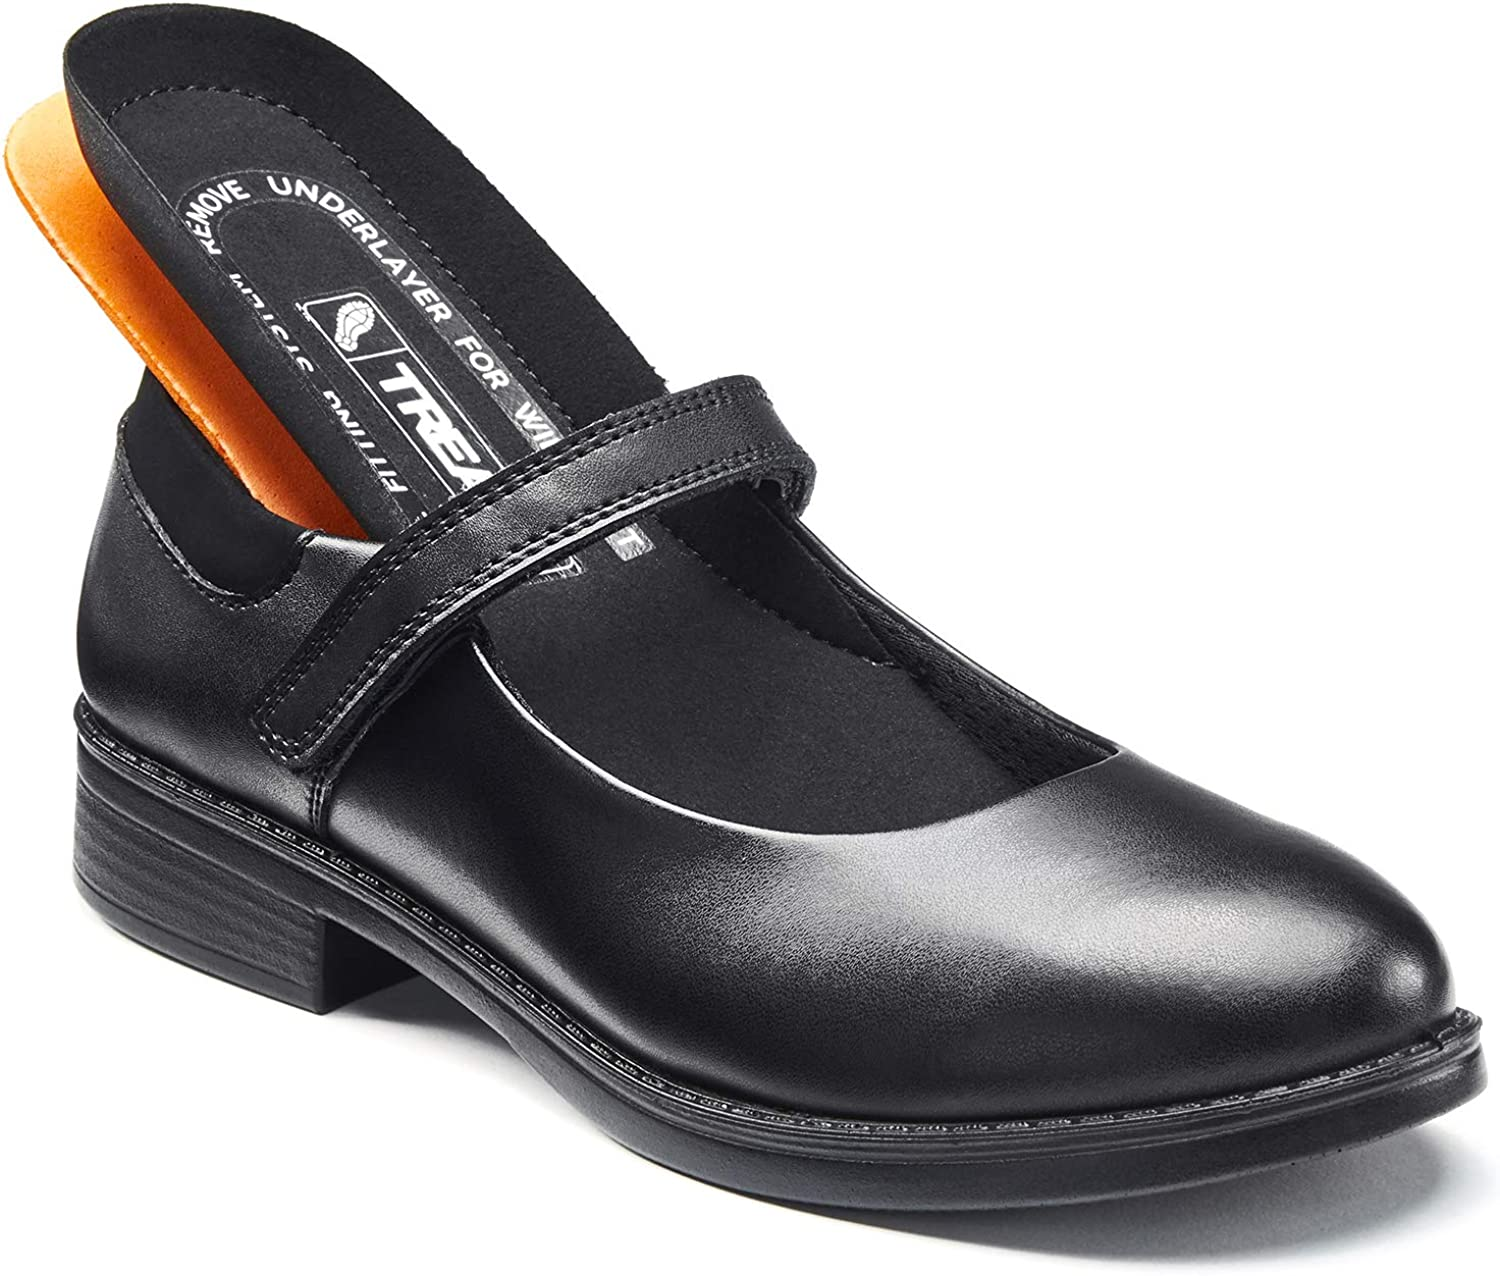 12 Month Indestructible Guarantee TREADS Mary Jane Girl/'s Black Leather School Shoes with Adjustable Width /'Dual Fit/' Technology Brisbane